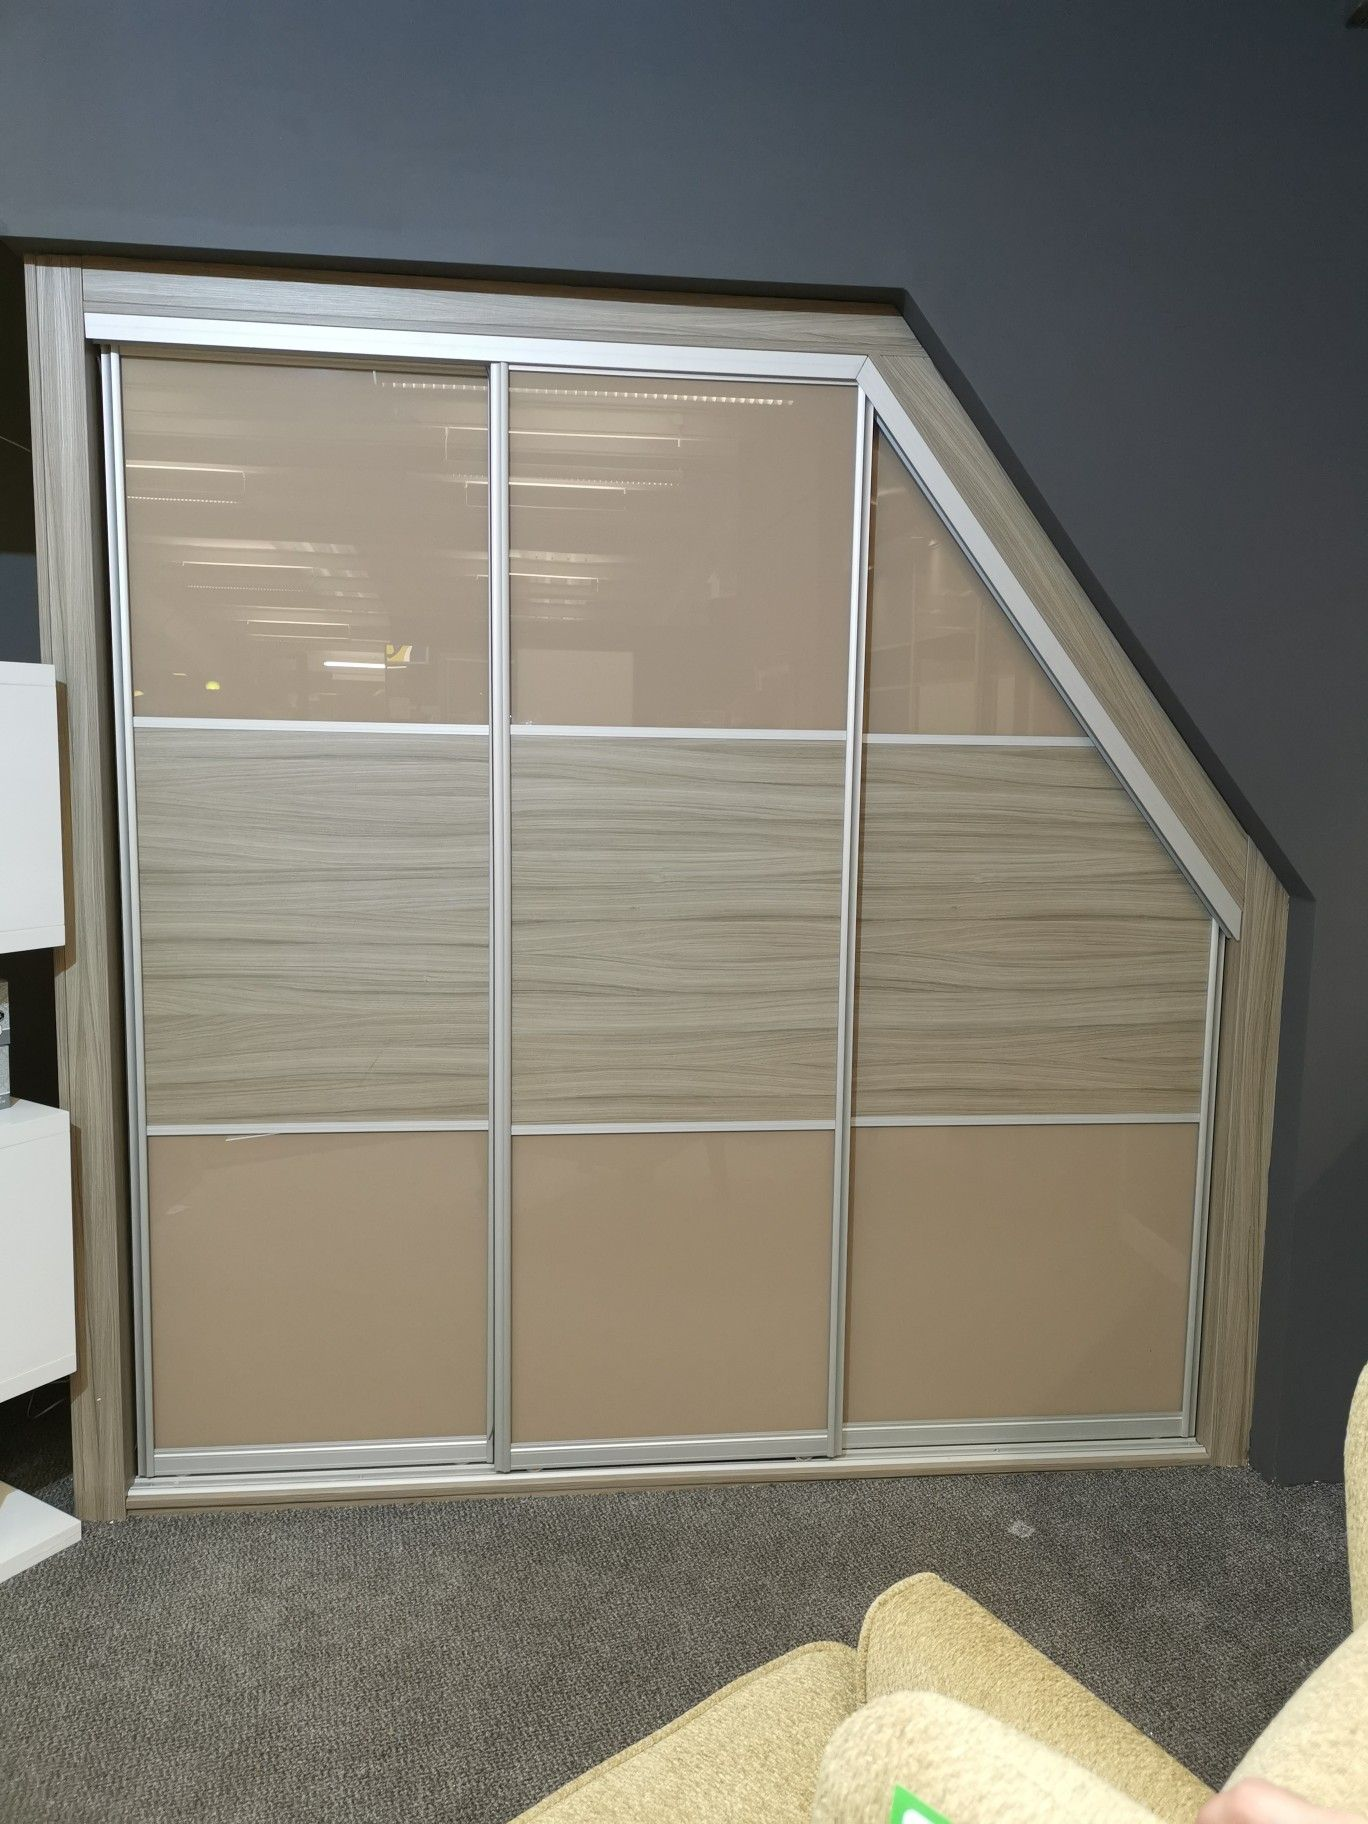 Made to measure sliding wardrobes to maximize your space